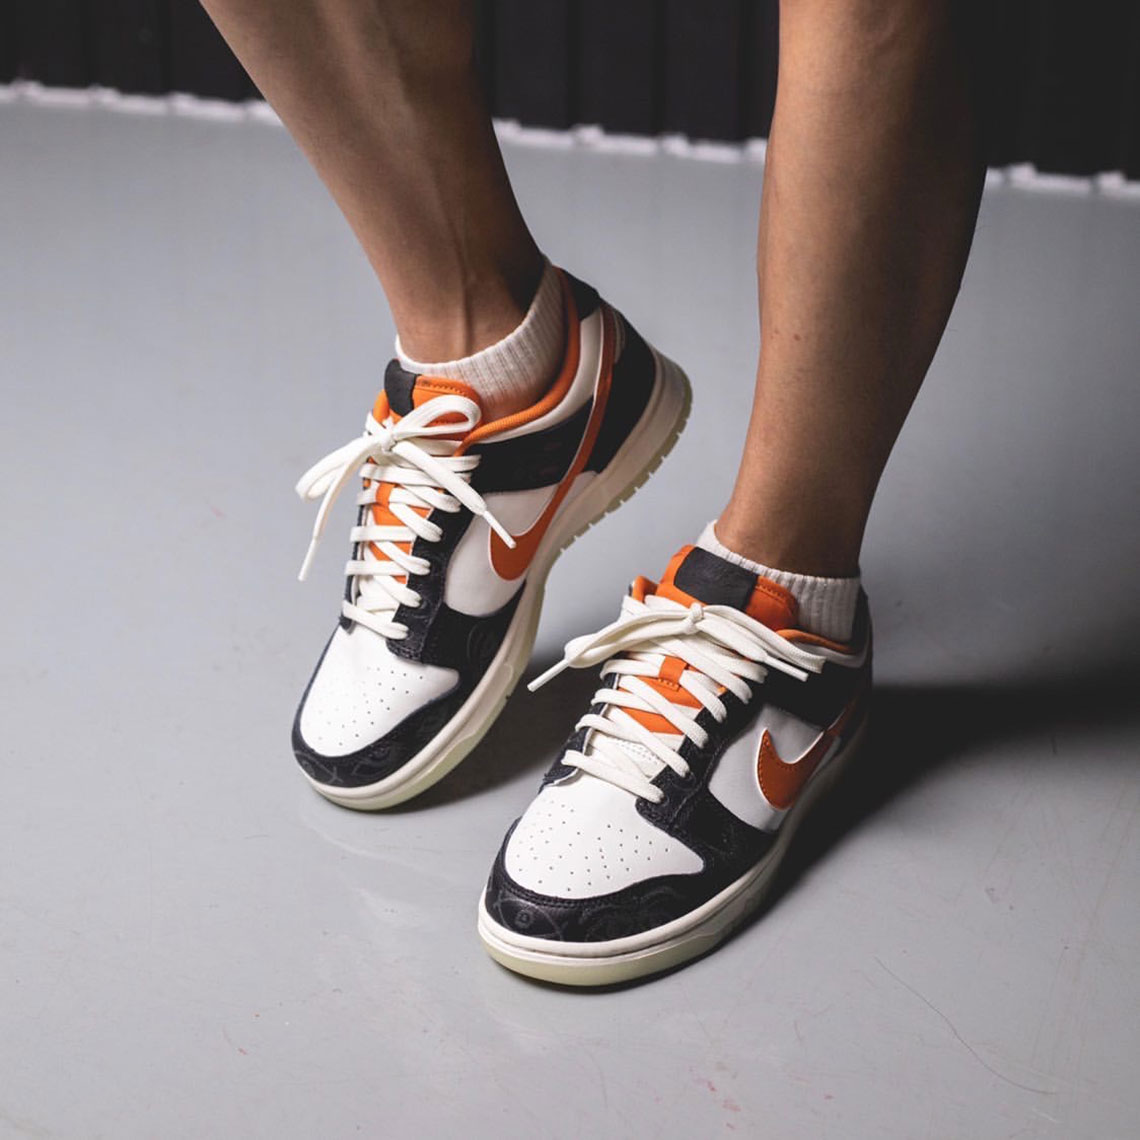 There's an app for virtually any kind of dating experience. Nike Dunk Low Halloween 2021 DD3357-100 Release - Shoe Trends